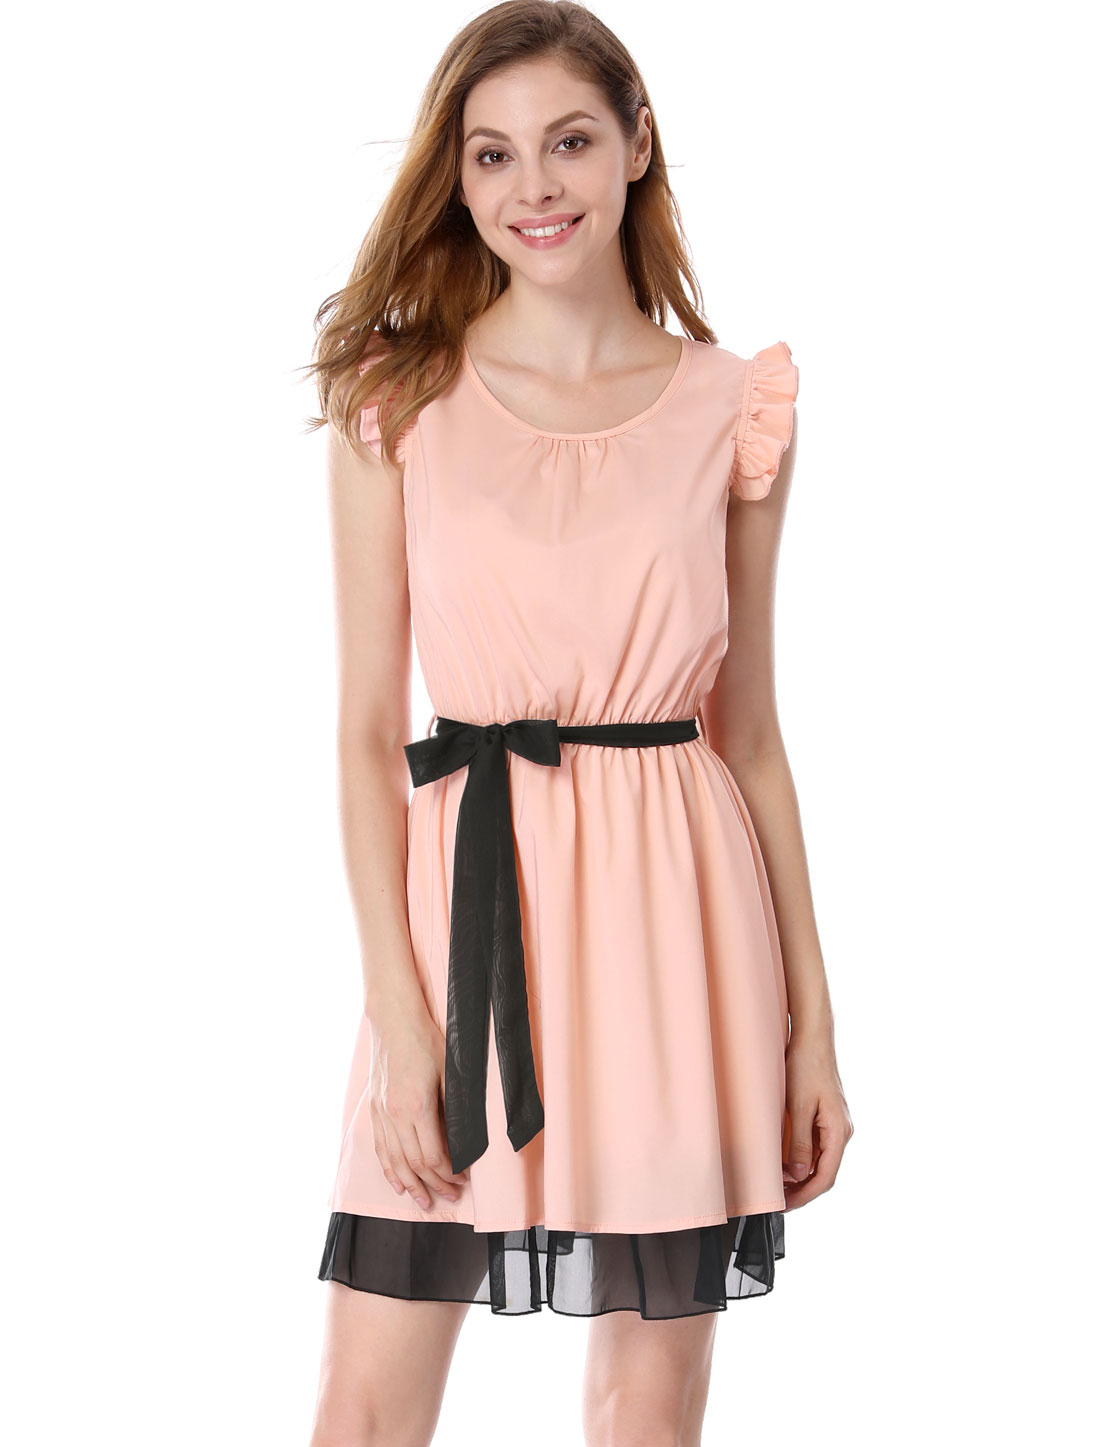 Woman Chic Scoop Neck Ruffled Cap Sleeve Pink Above Knee Dress S